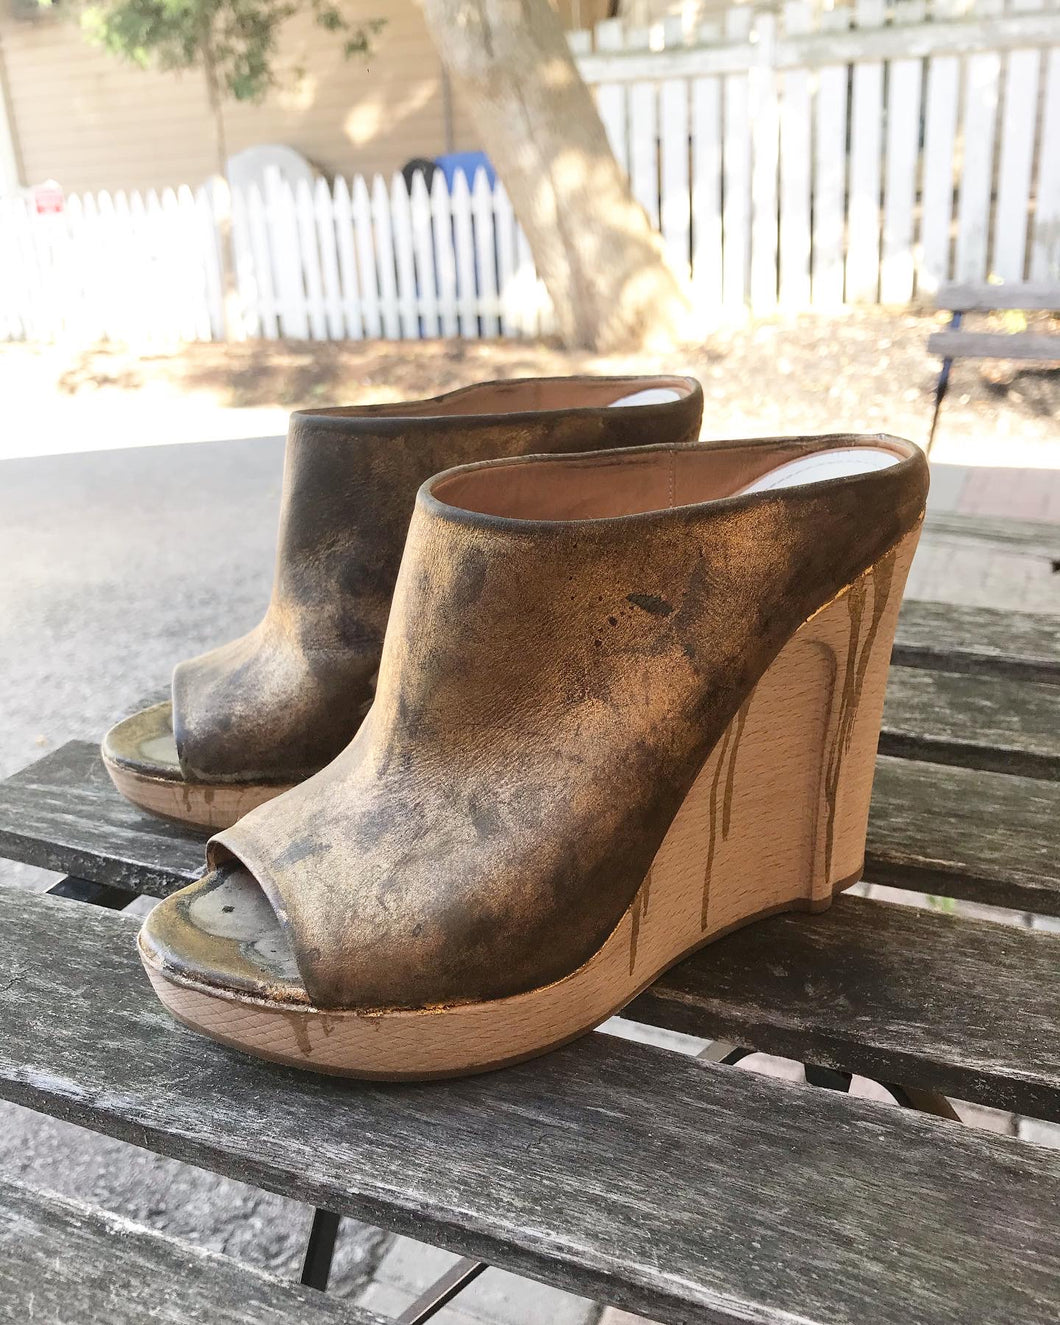 MAISON MARTIN MARGIELA Distressed Leather Wooden Heel Wedges In Gold Paint Drip Design